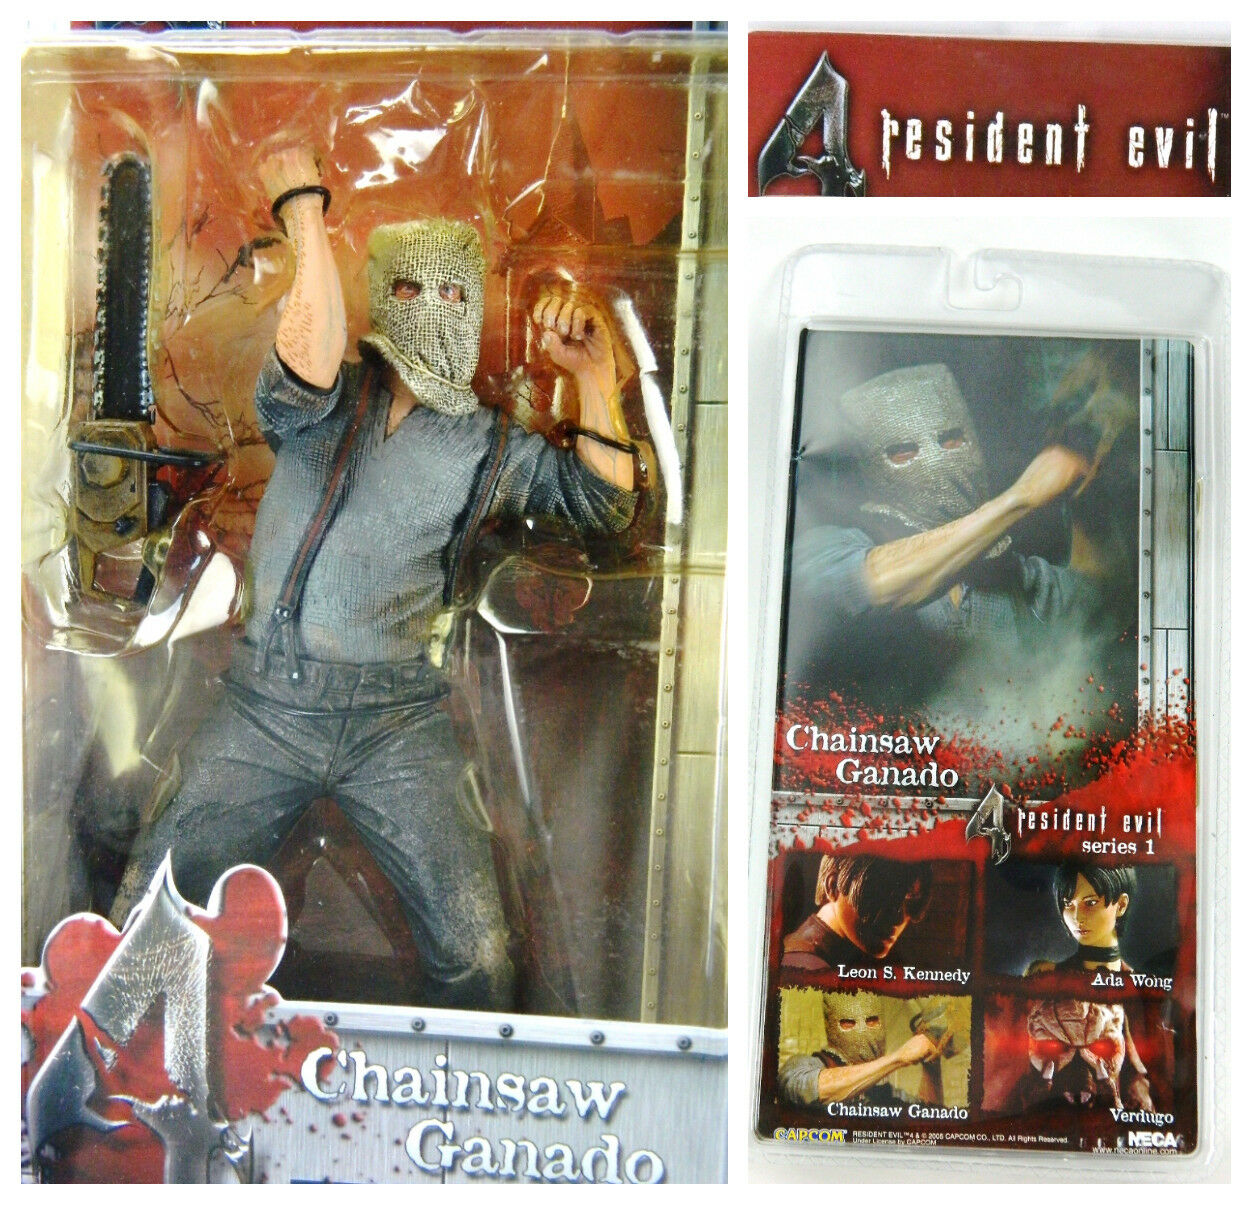 RESIDENT EVIL 4 Neca Chainsaw Ganado Figure Rare Series 1 New Sealed Capcom